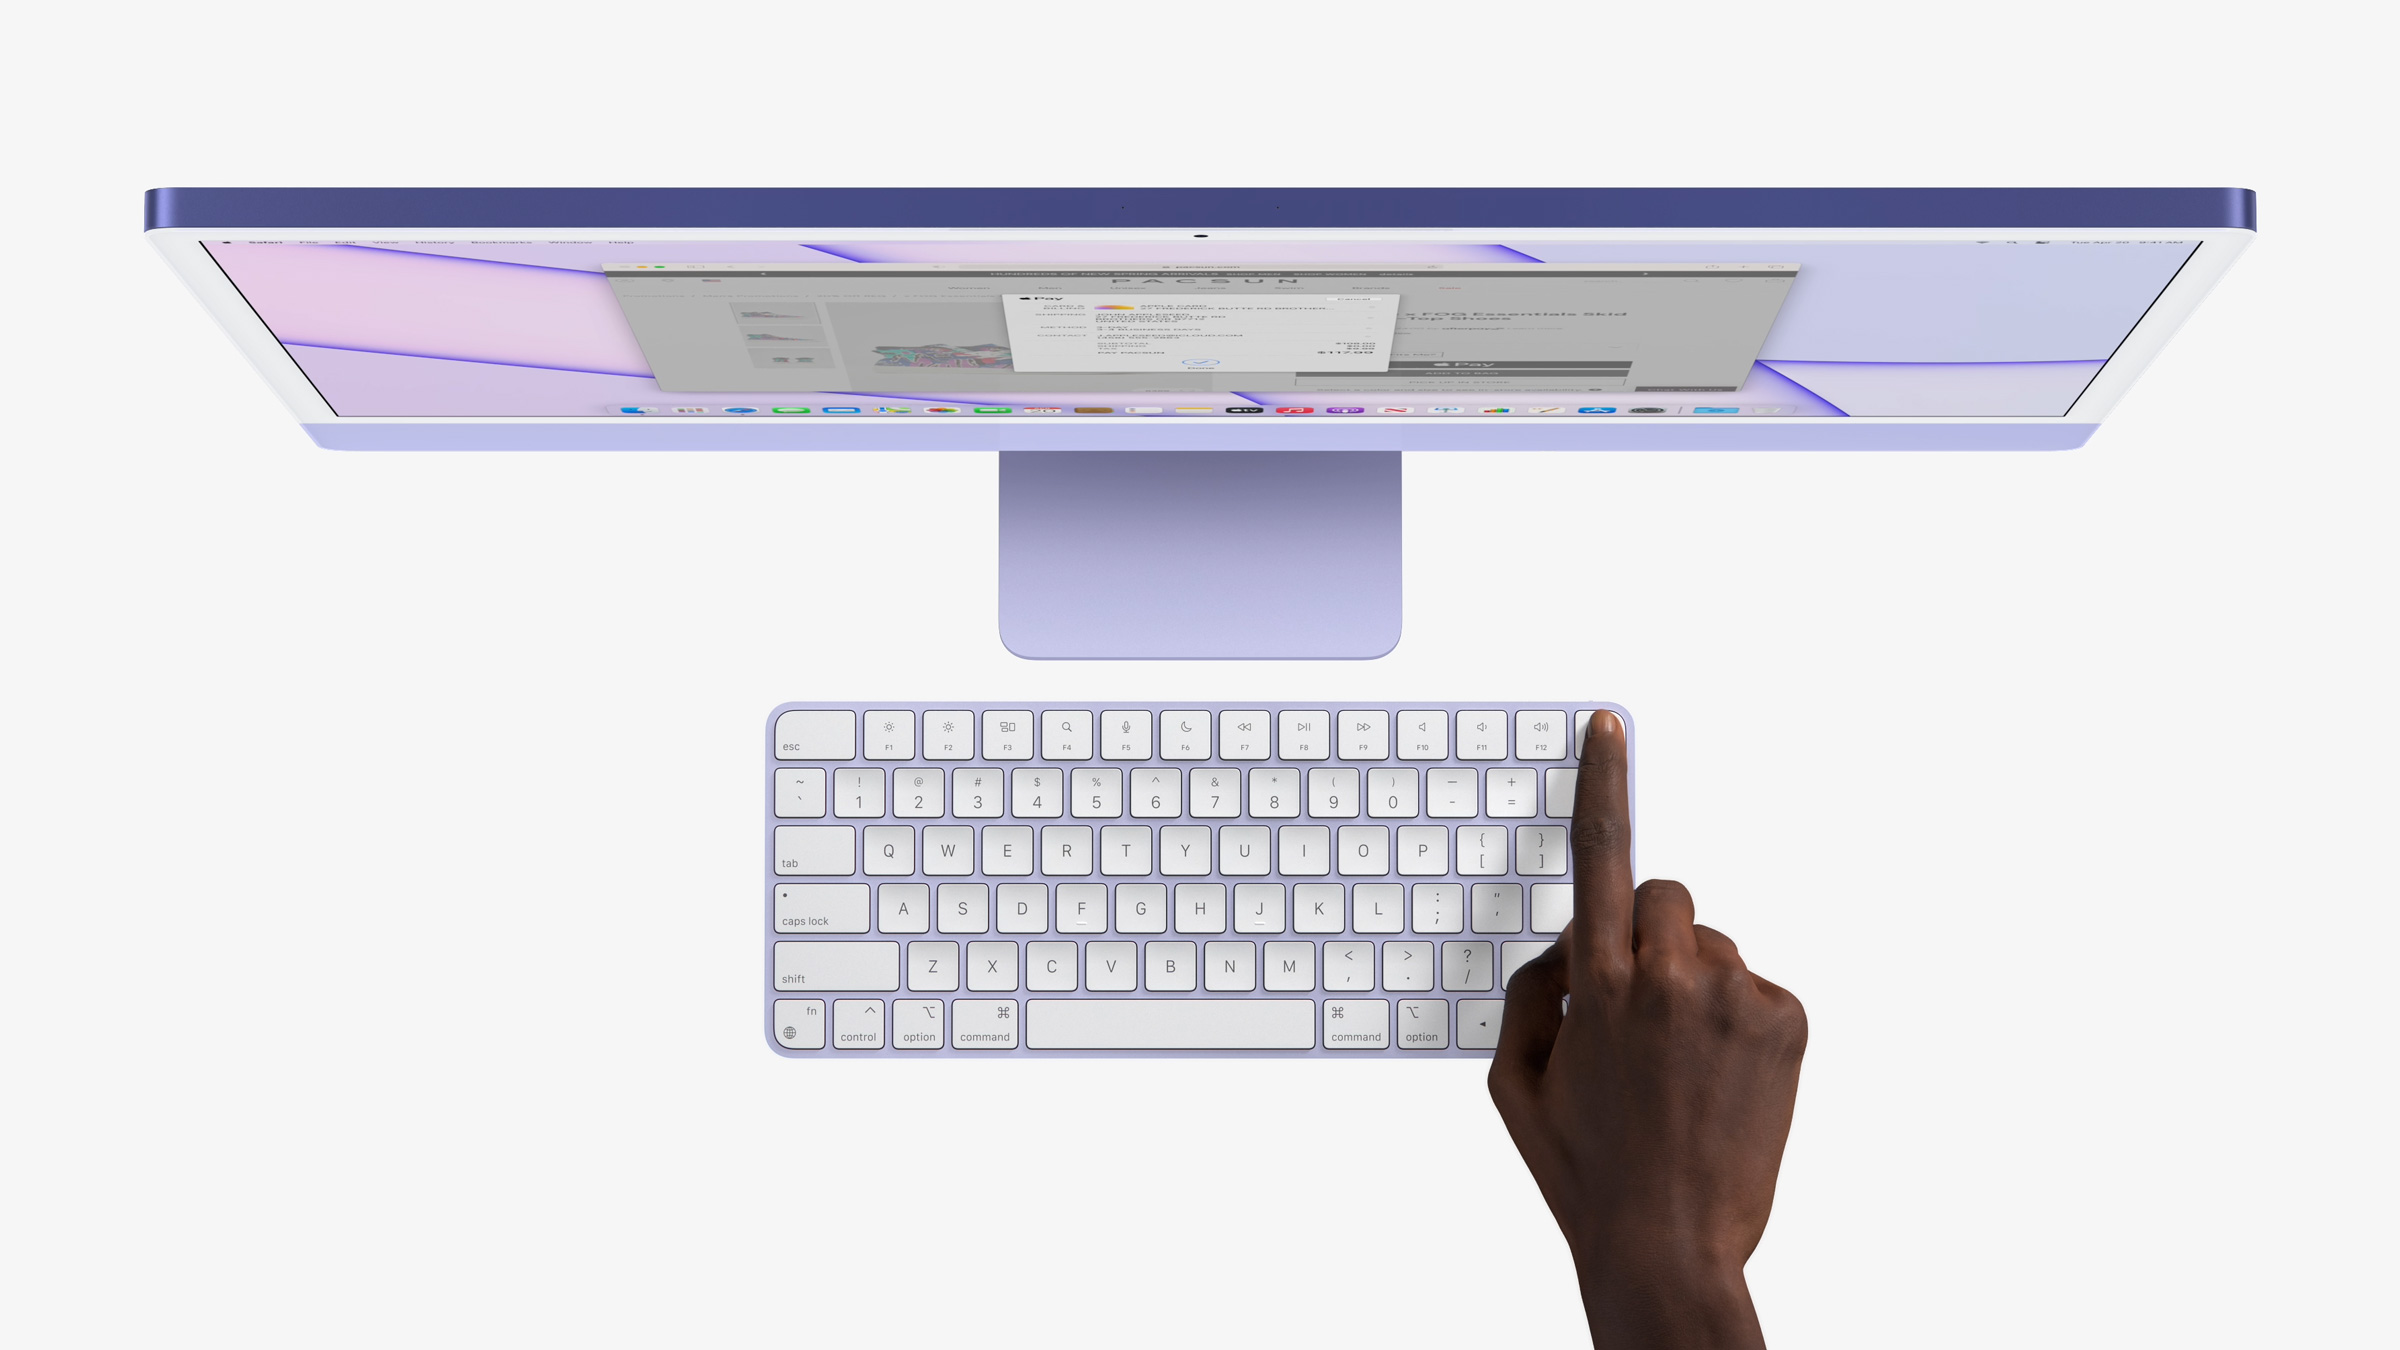 Apple's new iMac keyboards include Touch ID.